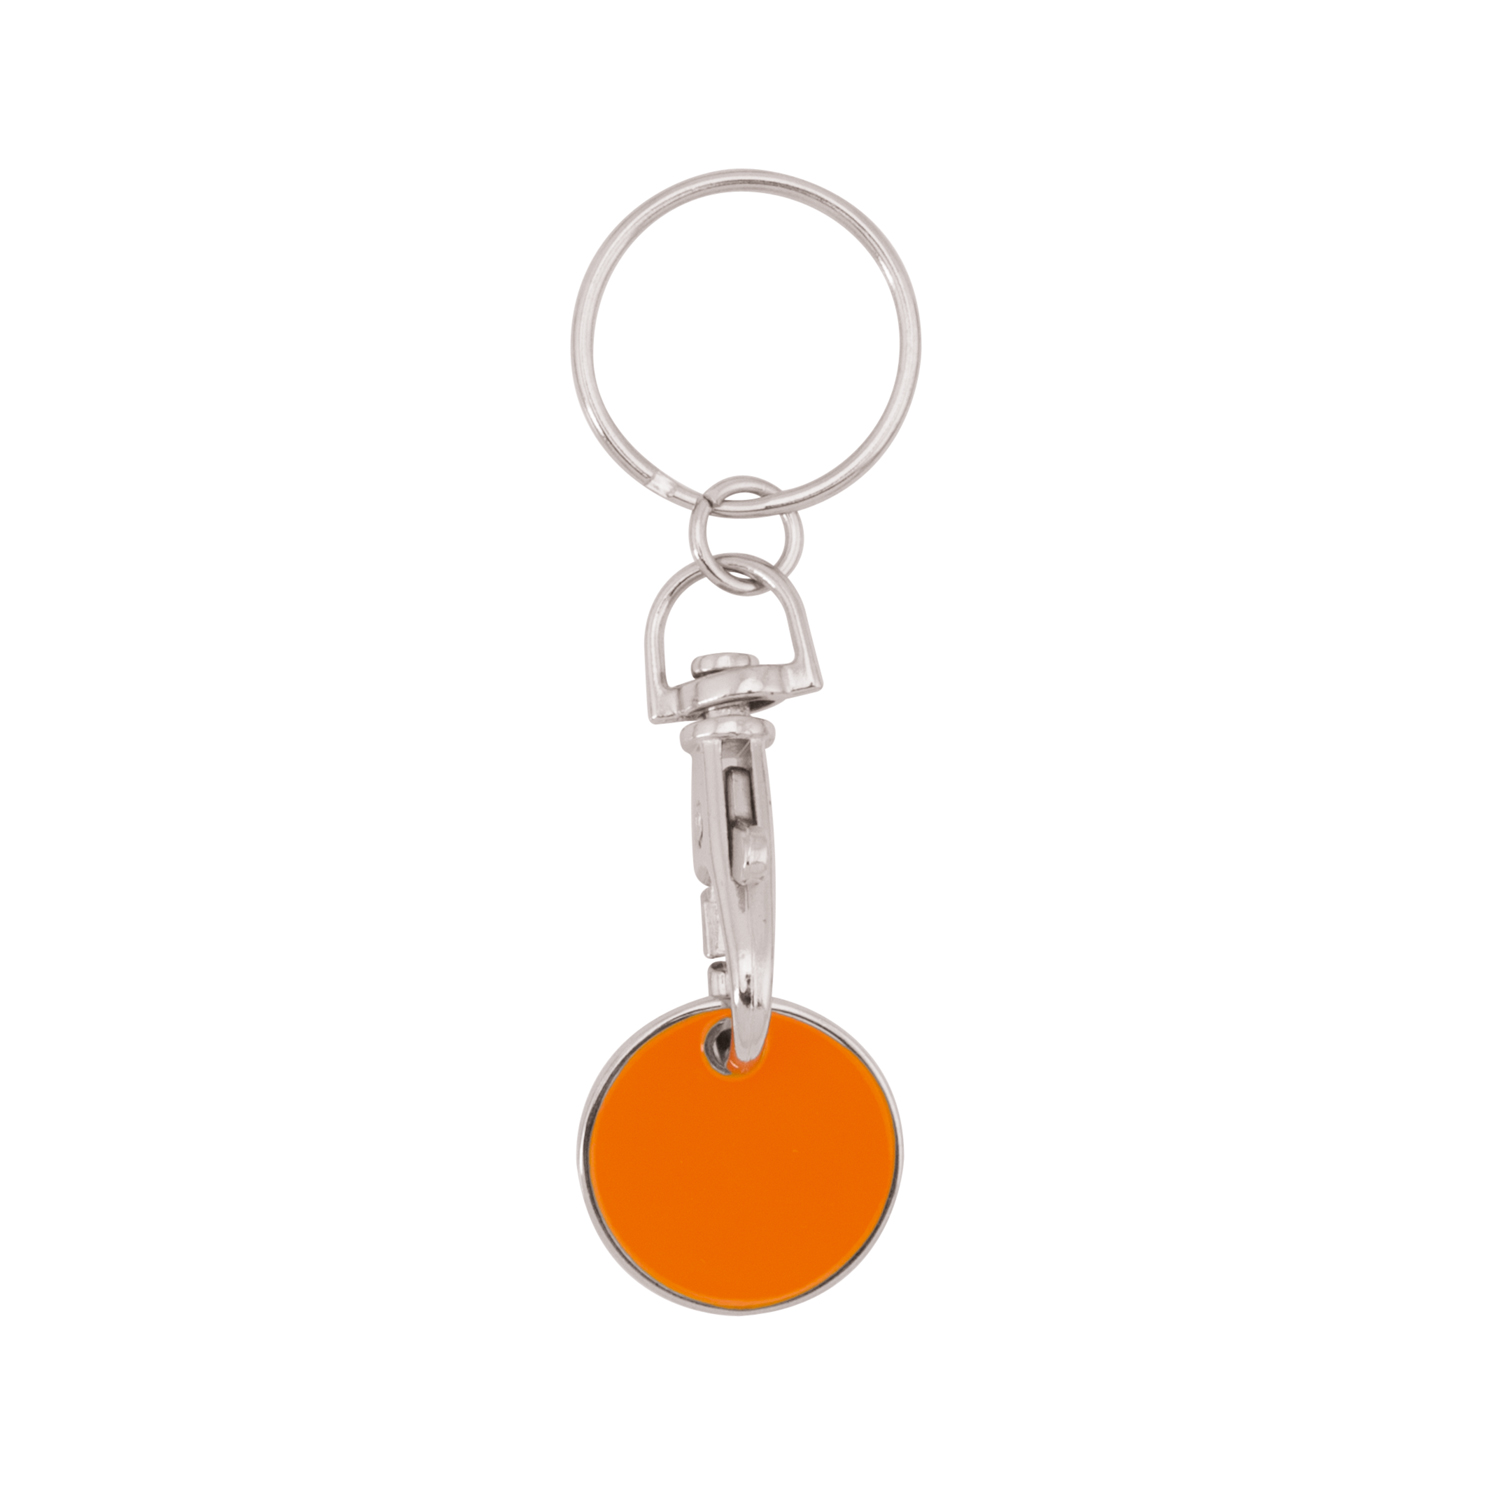 Keychain 059 (Shopping trolley coin keychain) - hmi47059-11 (Orange)